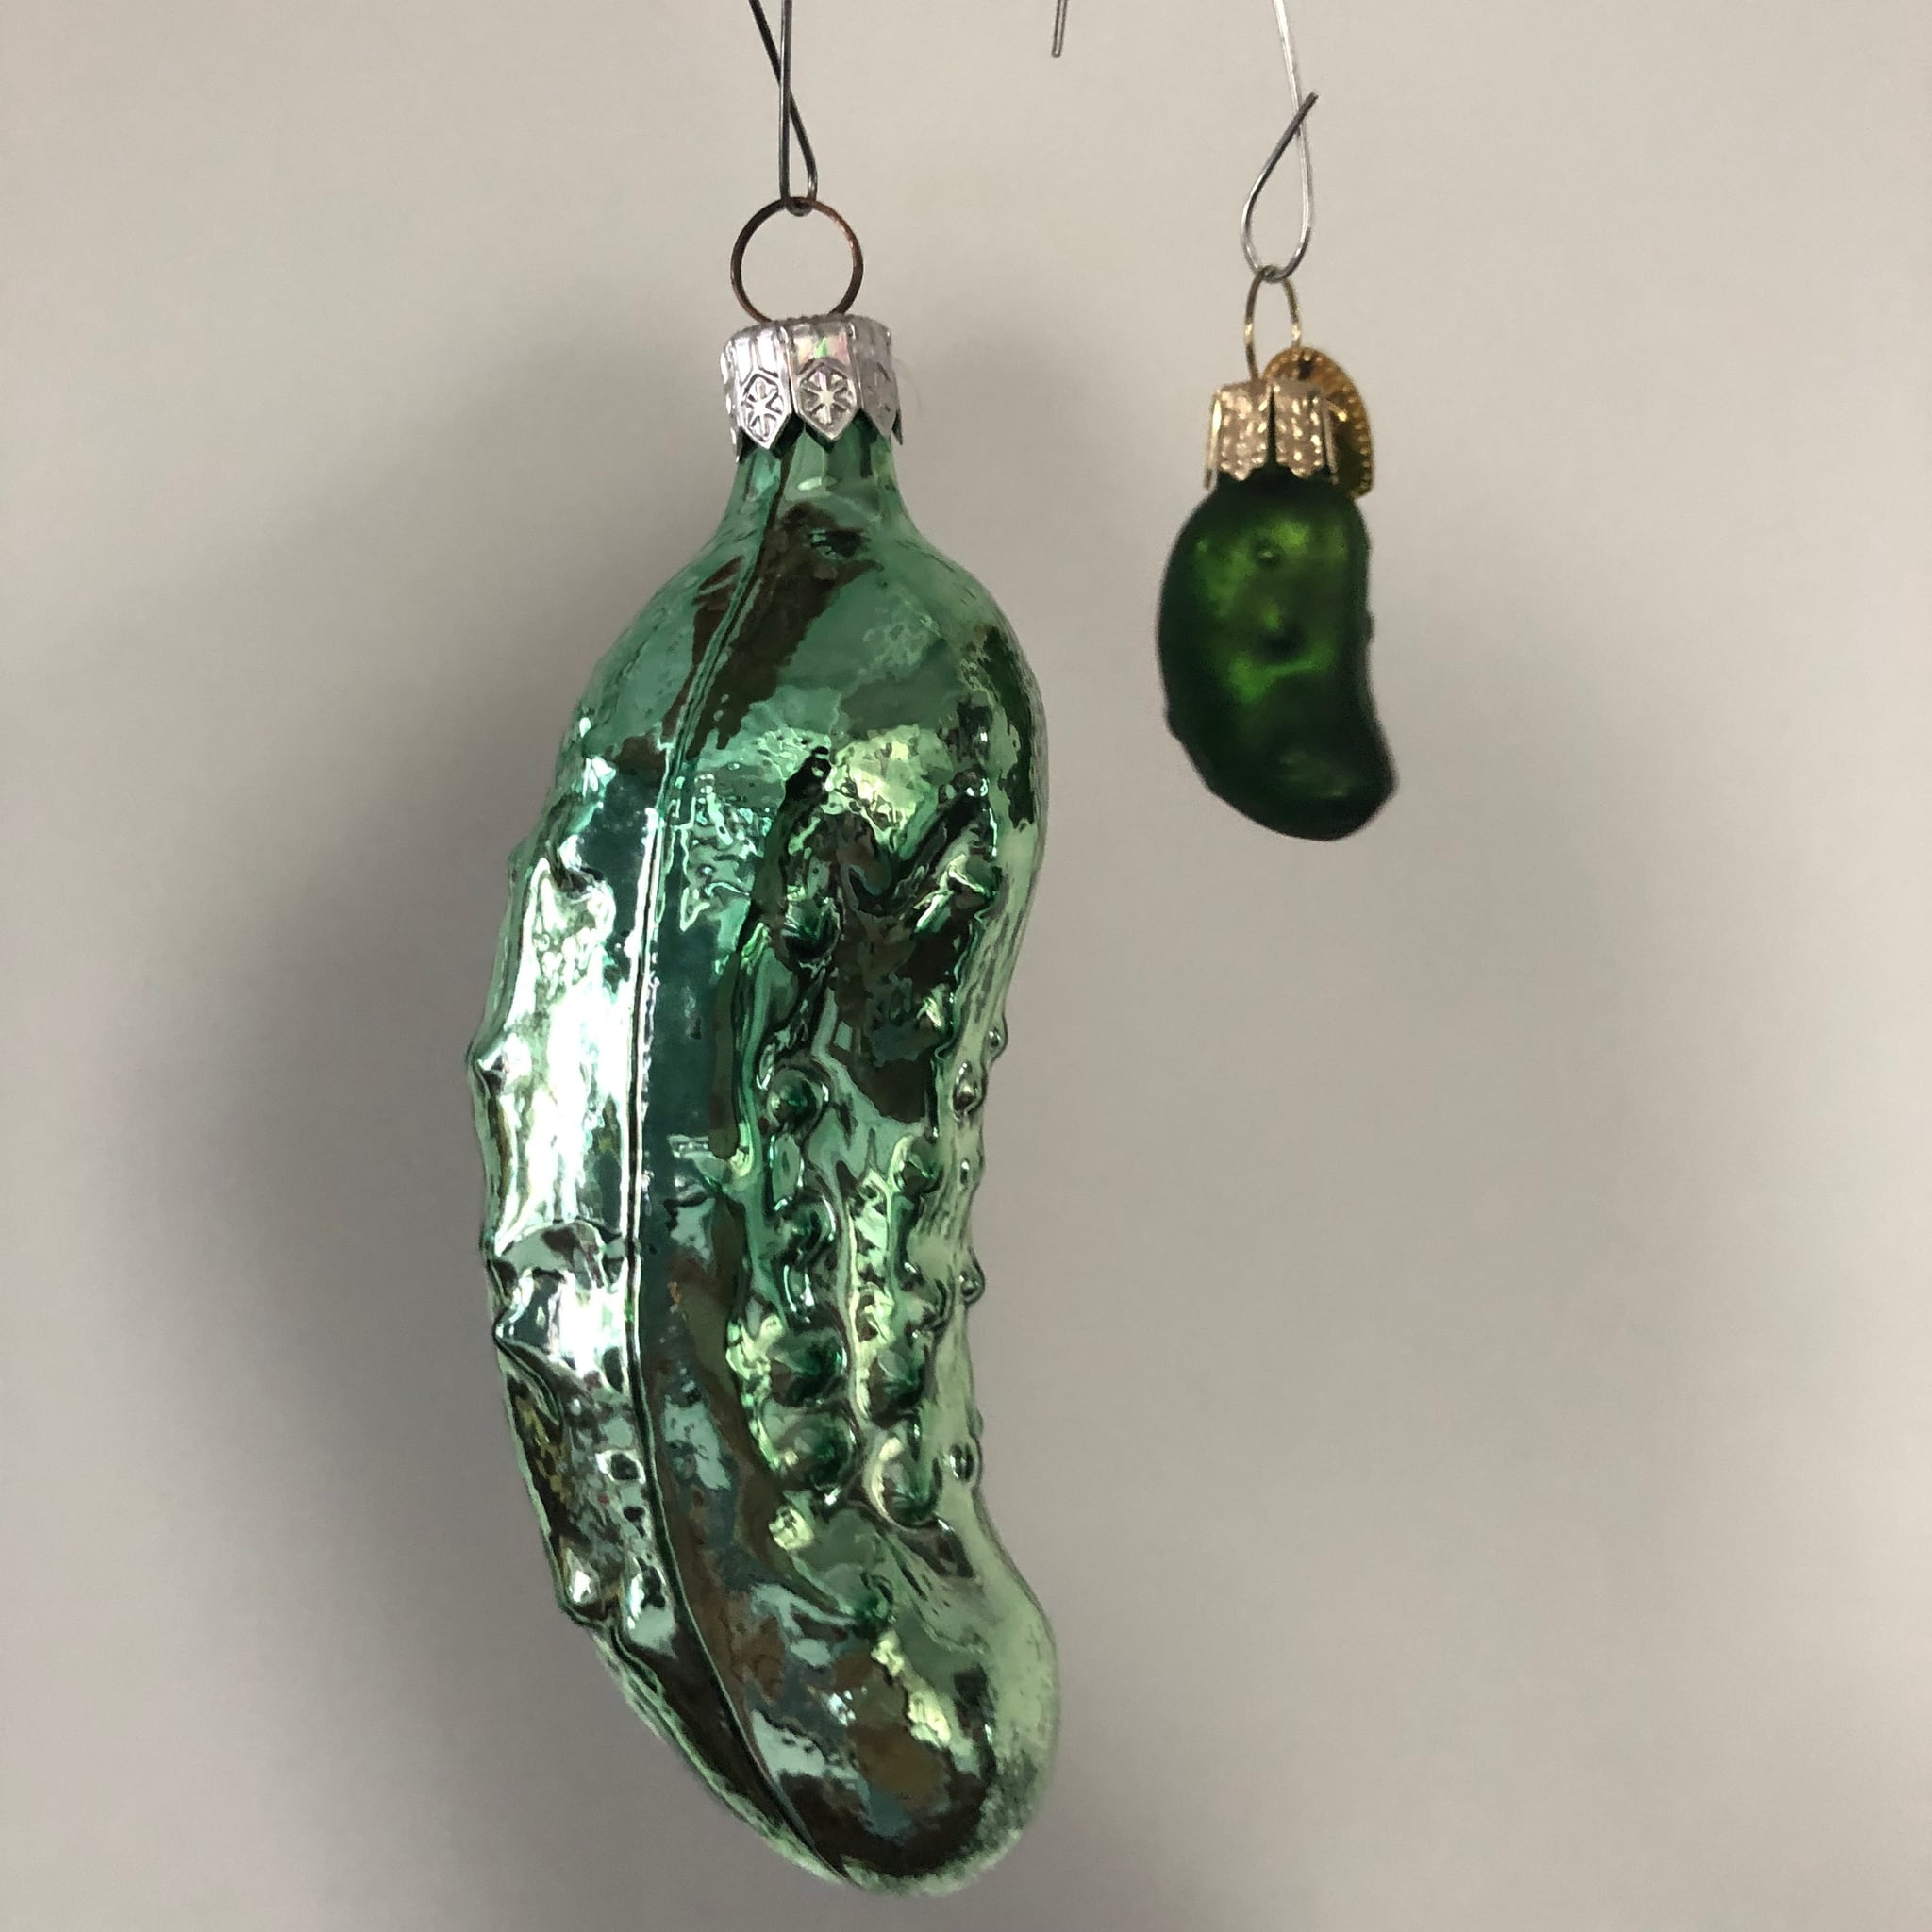 Hiding A Pickle In A Christmas Tree.Pickle Christmas Tree Ornament Tradition Popsugar Family